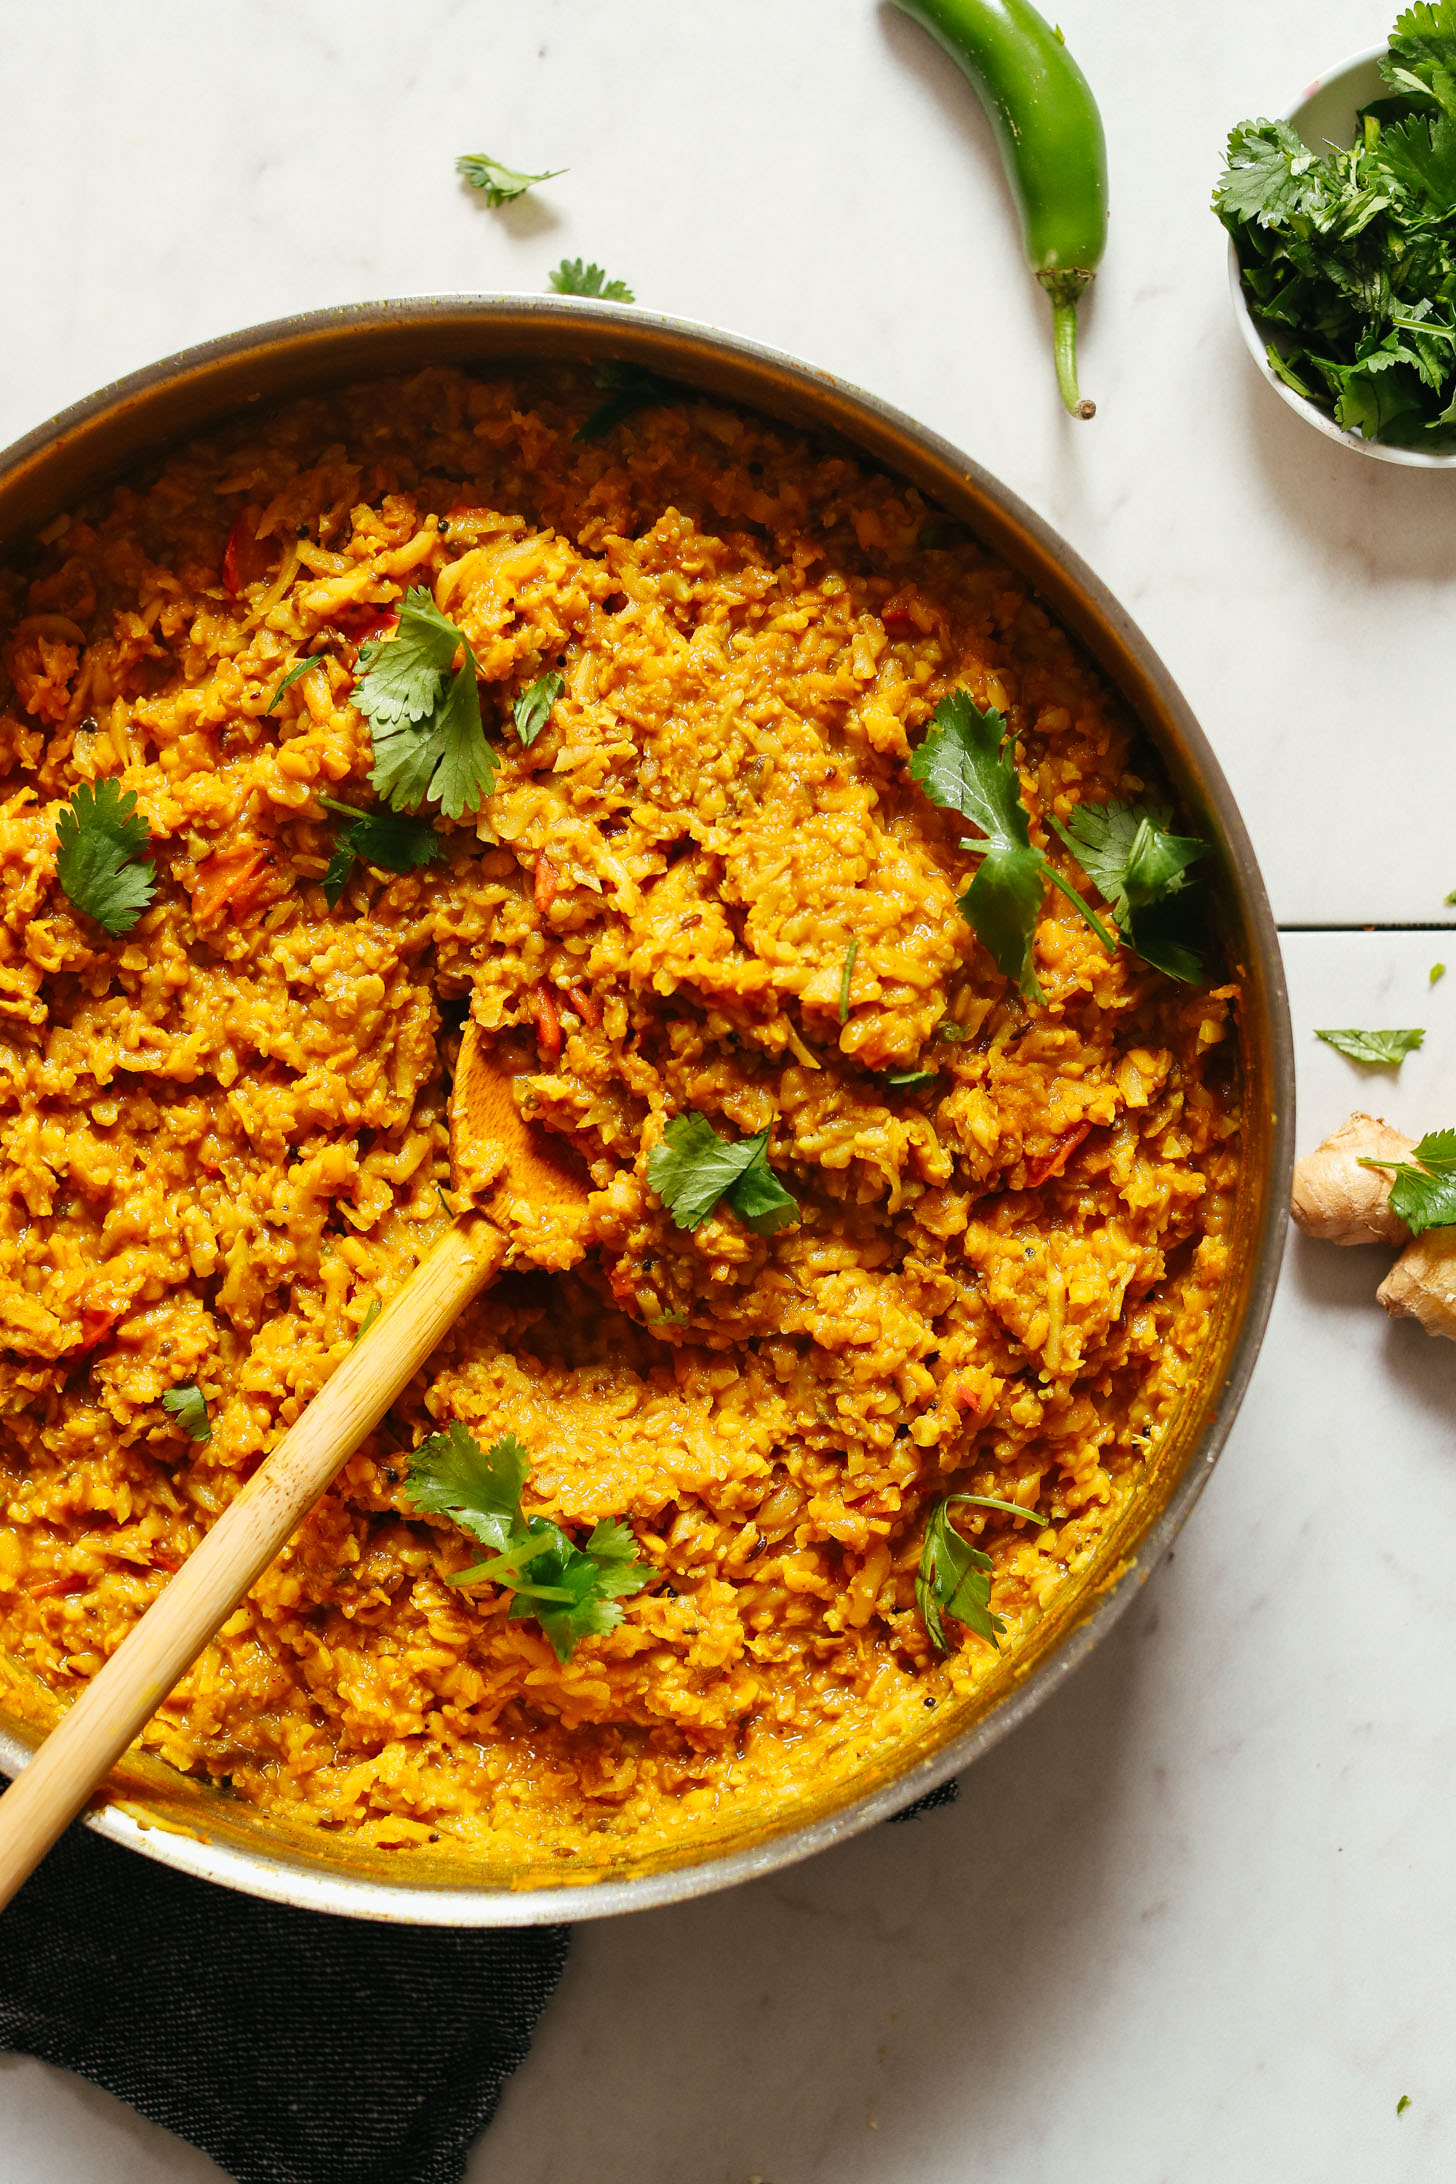 Stirring a pot of gluten-free vegan Cauliflower Rice Kitchari